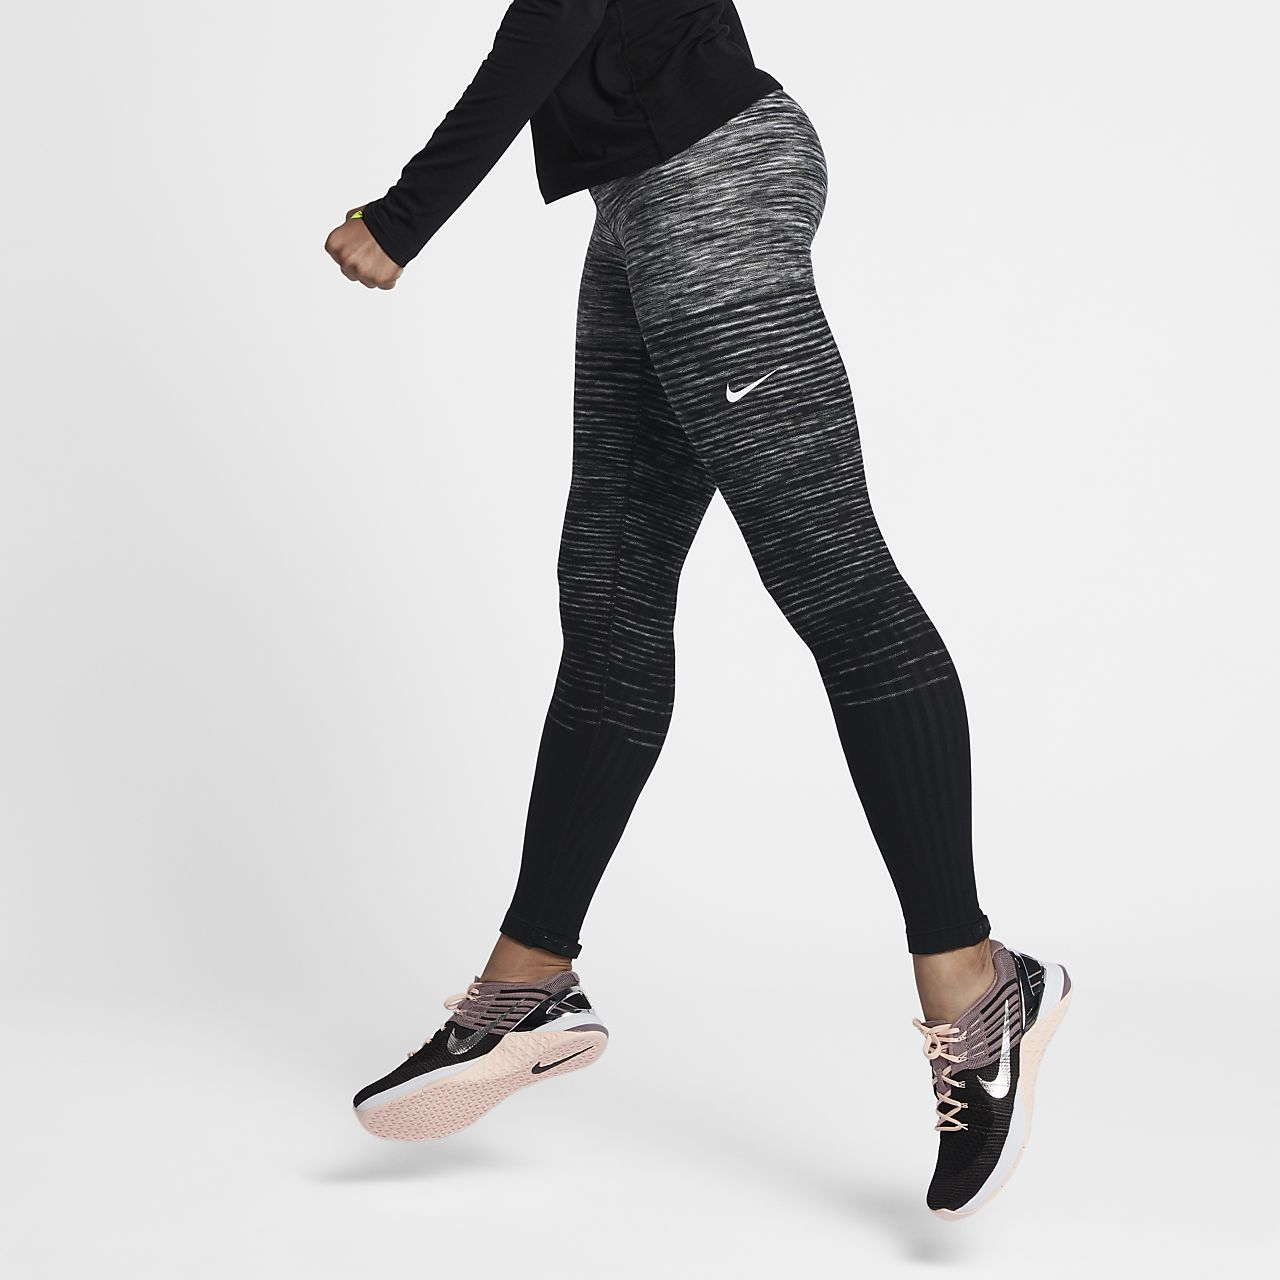 Kendte Nike Pro HyperWarm Women's Training Tights. Nike.com SG ZW-92